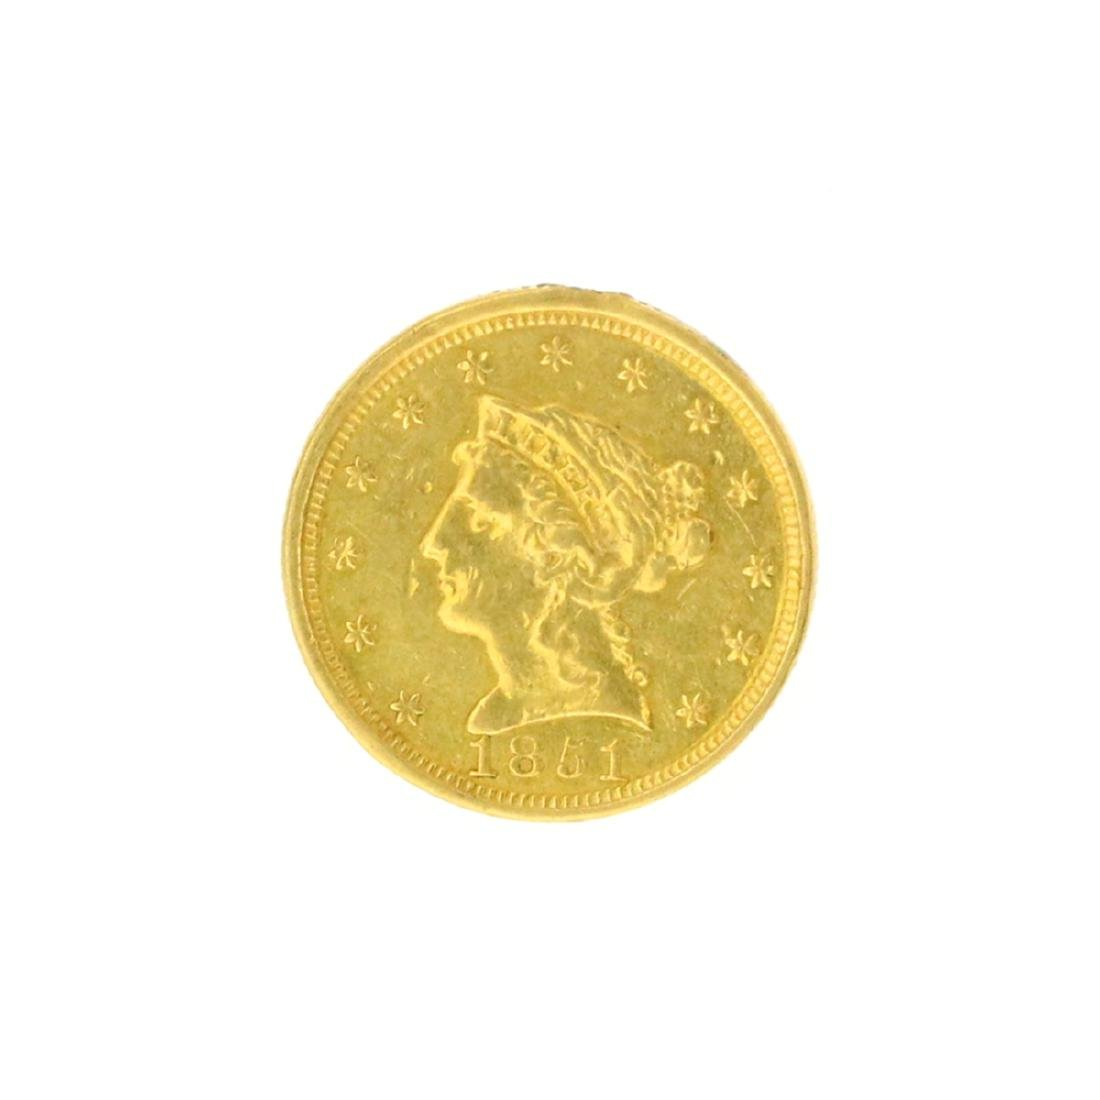 Extremely Rare 1851 $2.50 U.S. Liberty Head Gold Coin